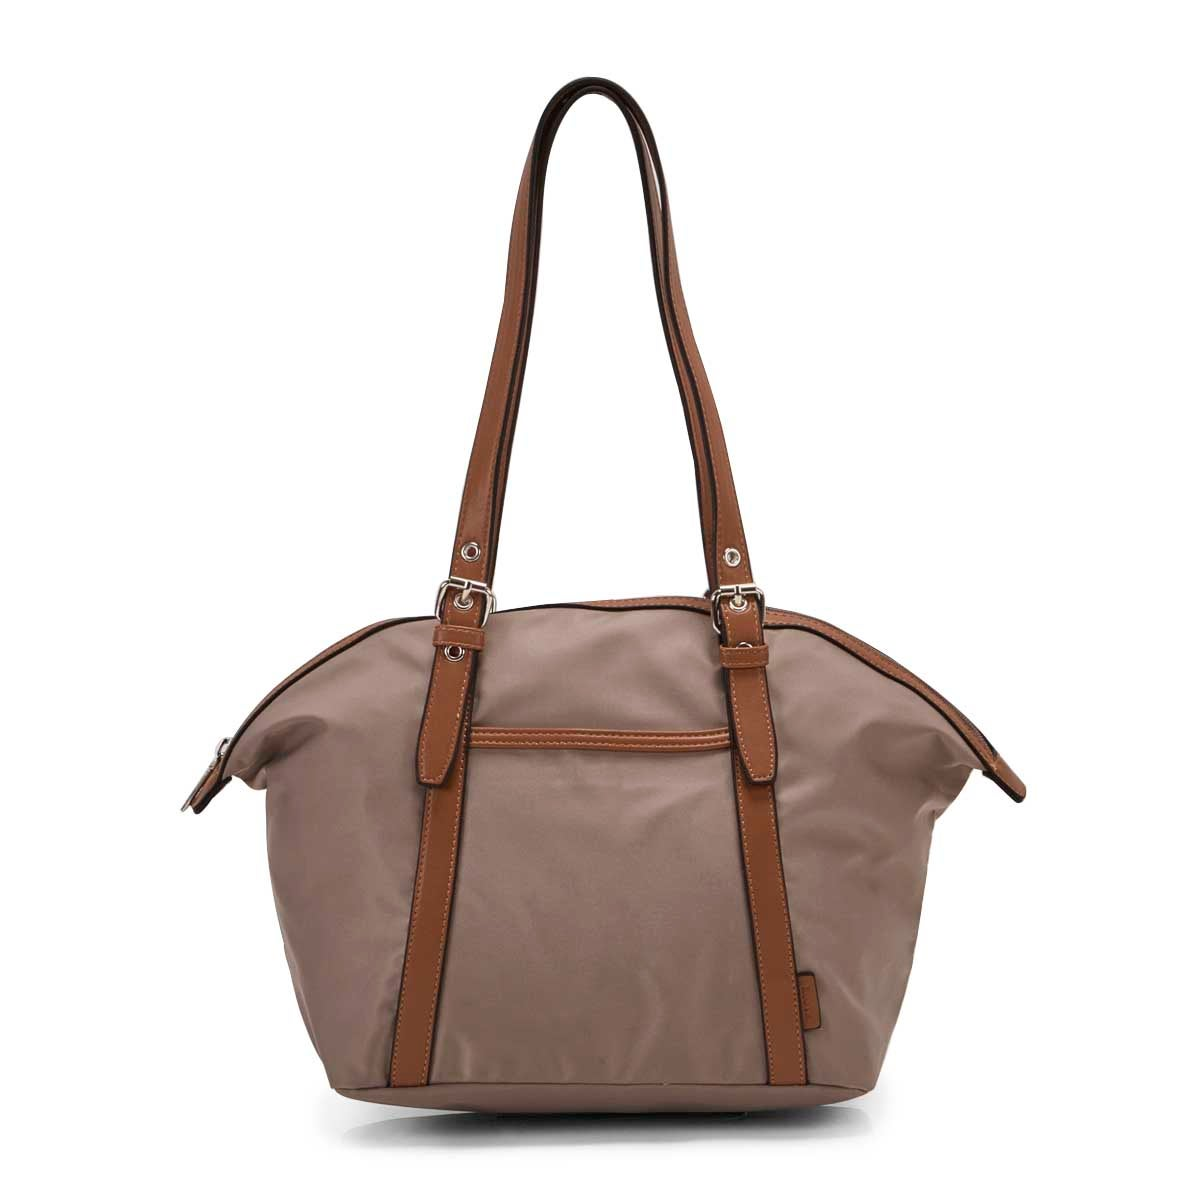 Lds Roots73 taupe round top shoulder bag